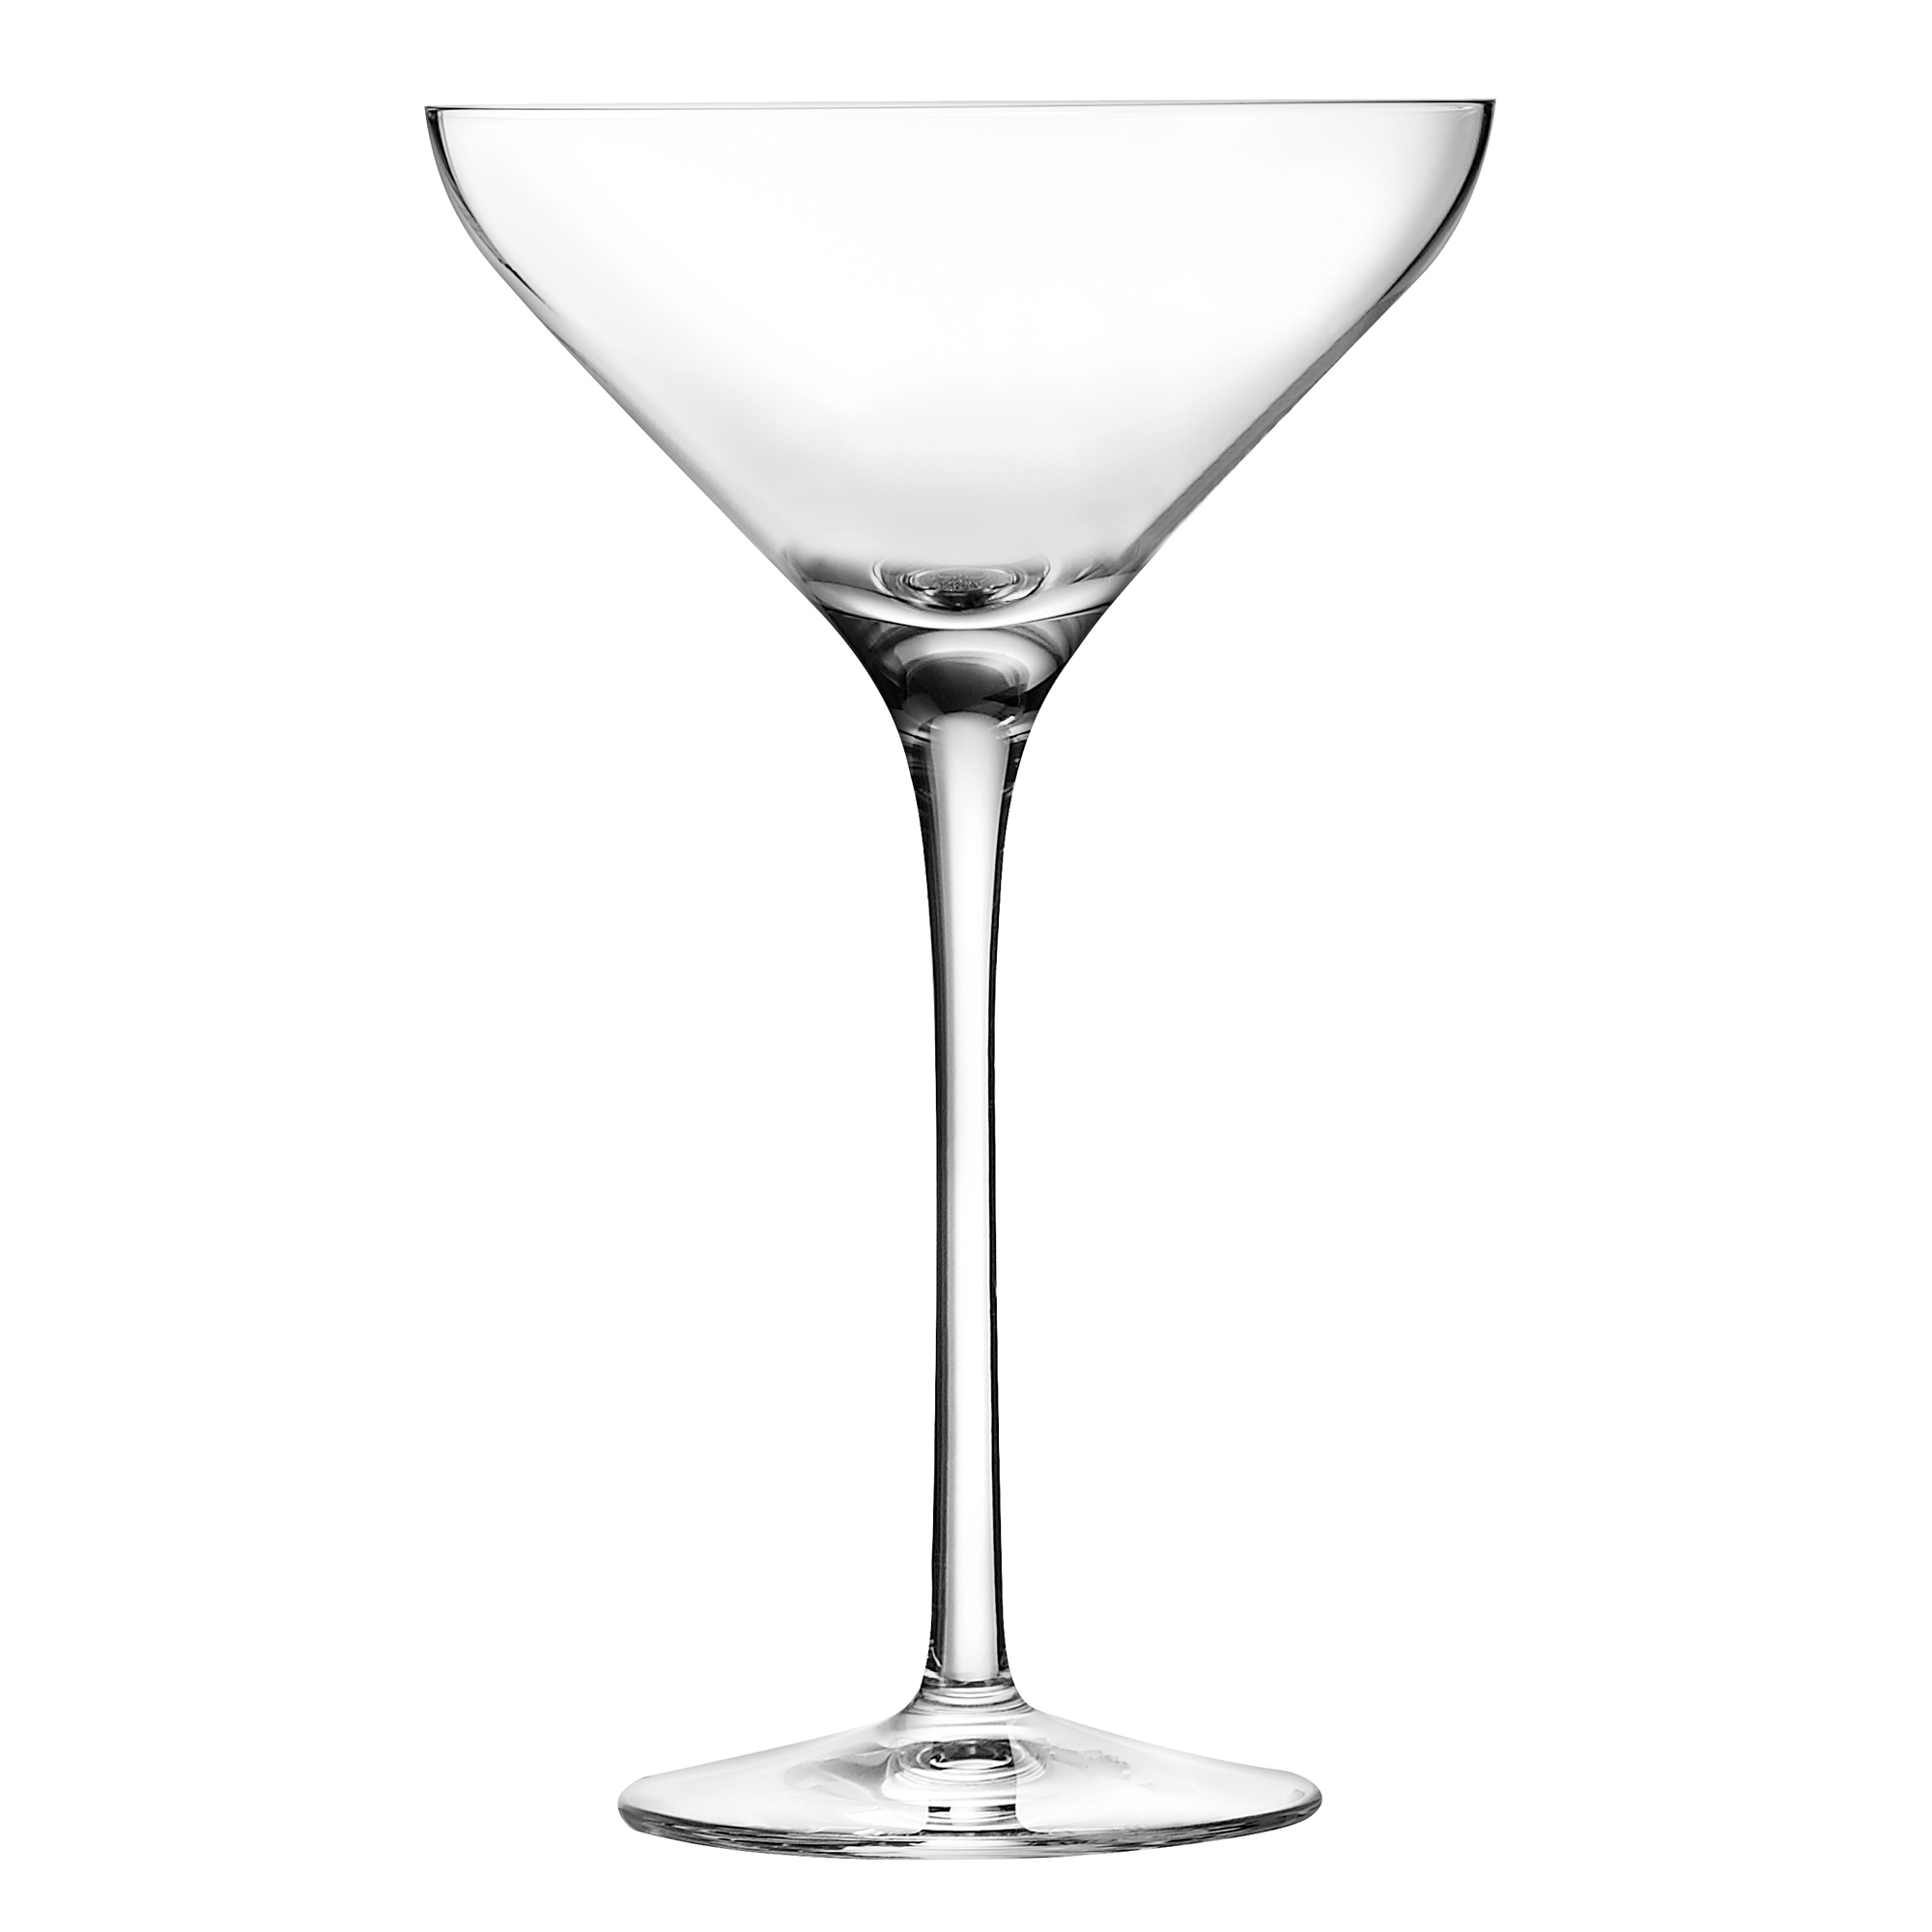 cabernet kwarx coupe martini glasses 210ml at drinkstuff. Black Bedroom Furniture Sets. Home Design Ideas